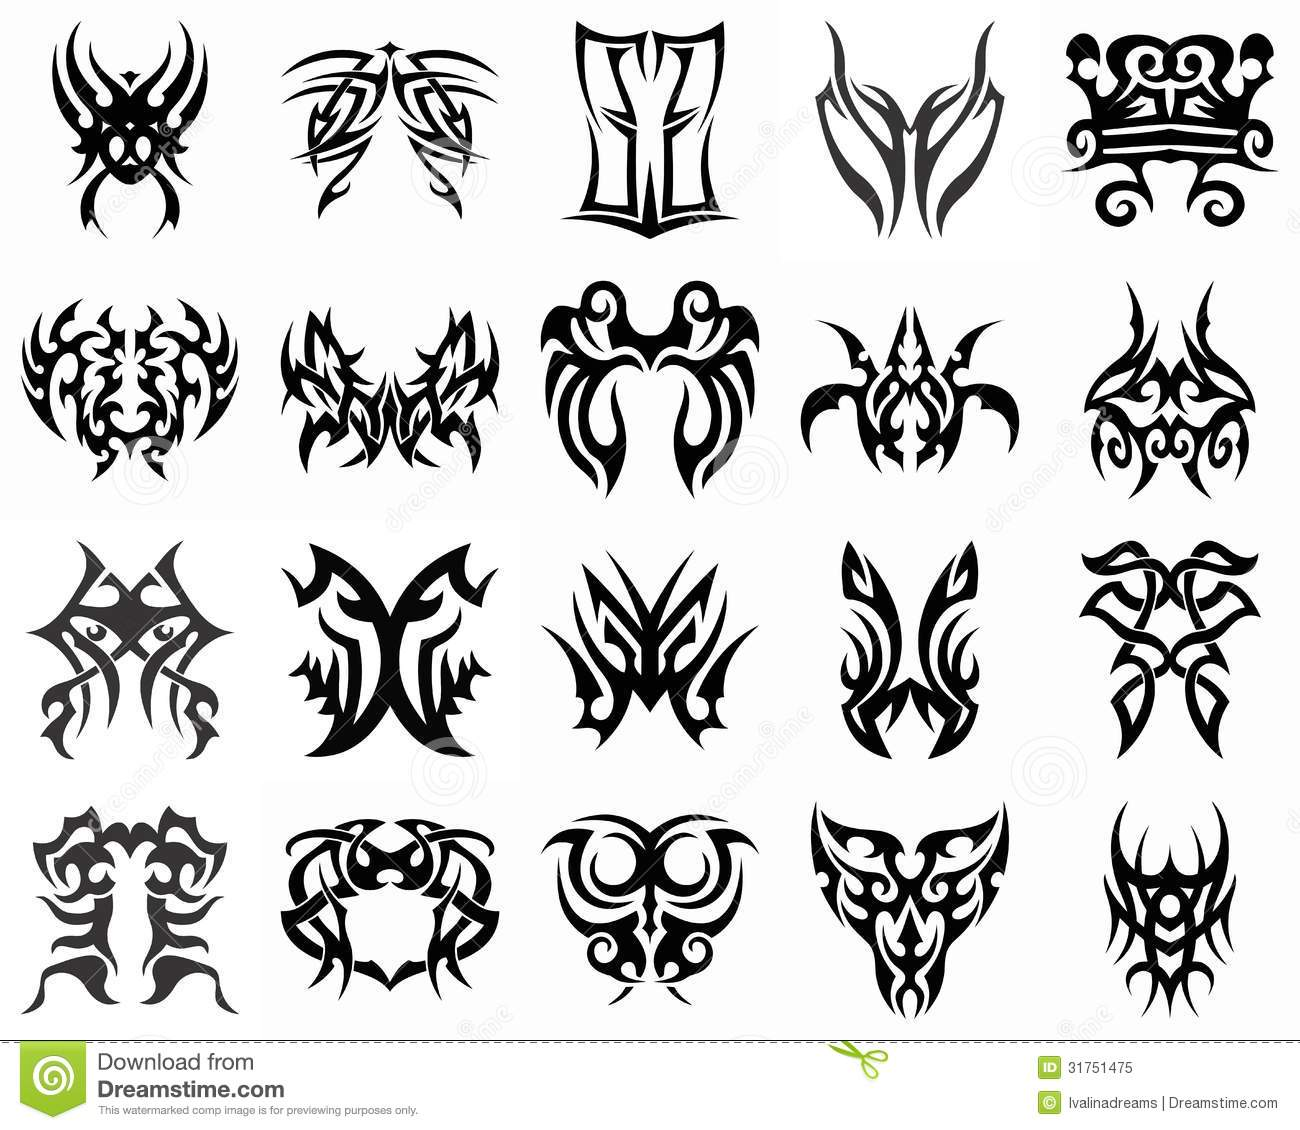 Illustration Tribal Tattoo Design Vinyl Ready Stock Illustration